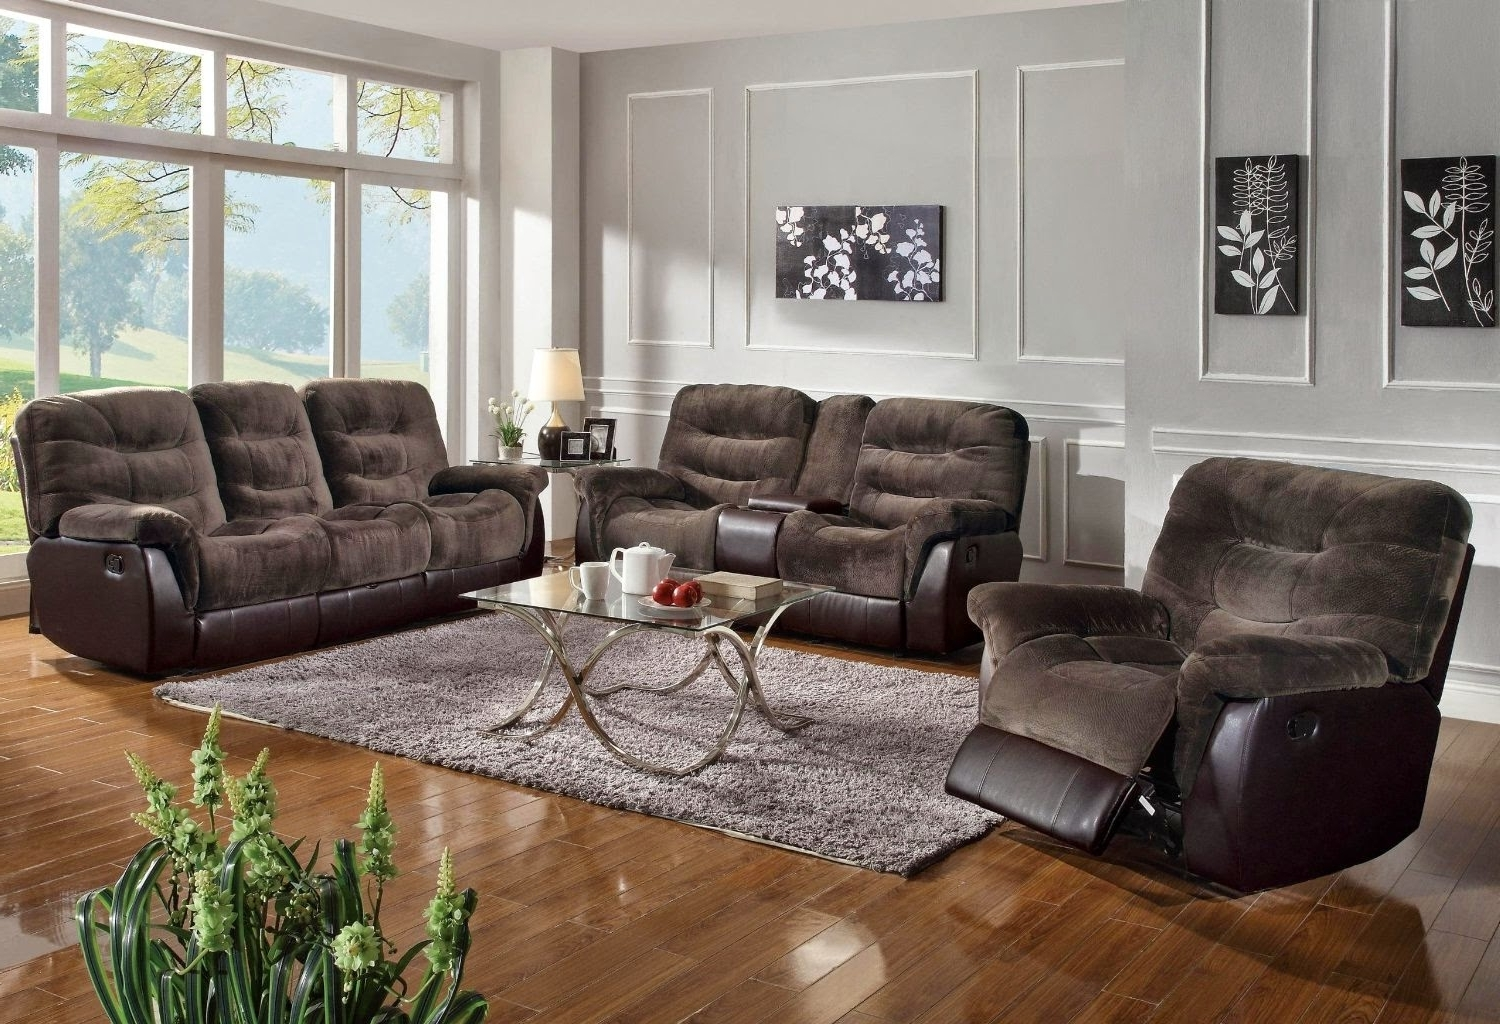 Leather Sectional Couches For Small Spaces – Saomc (View 7 of 20)